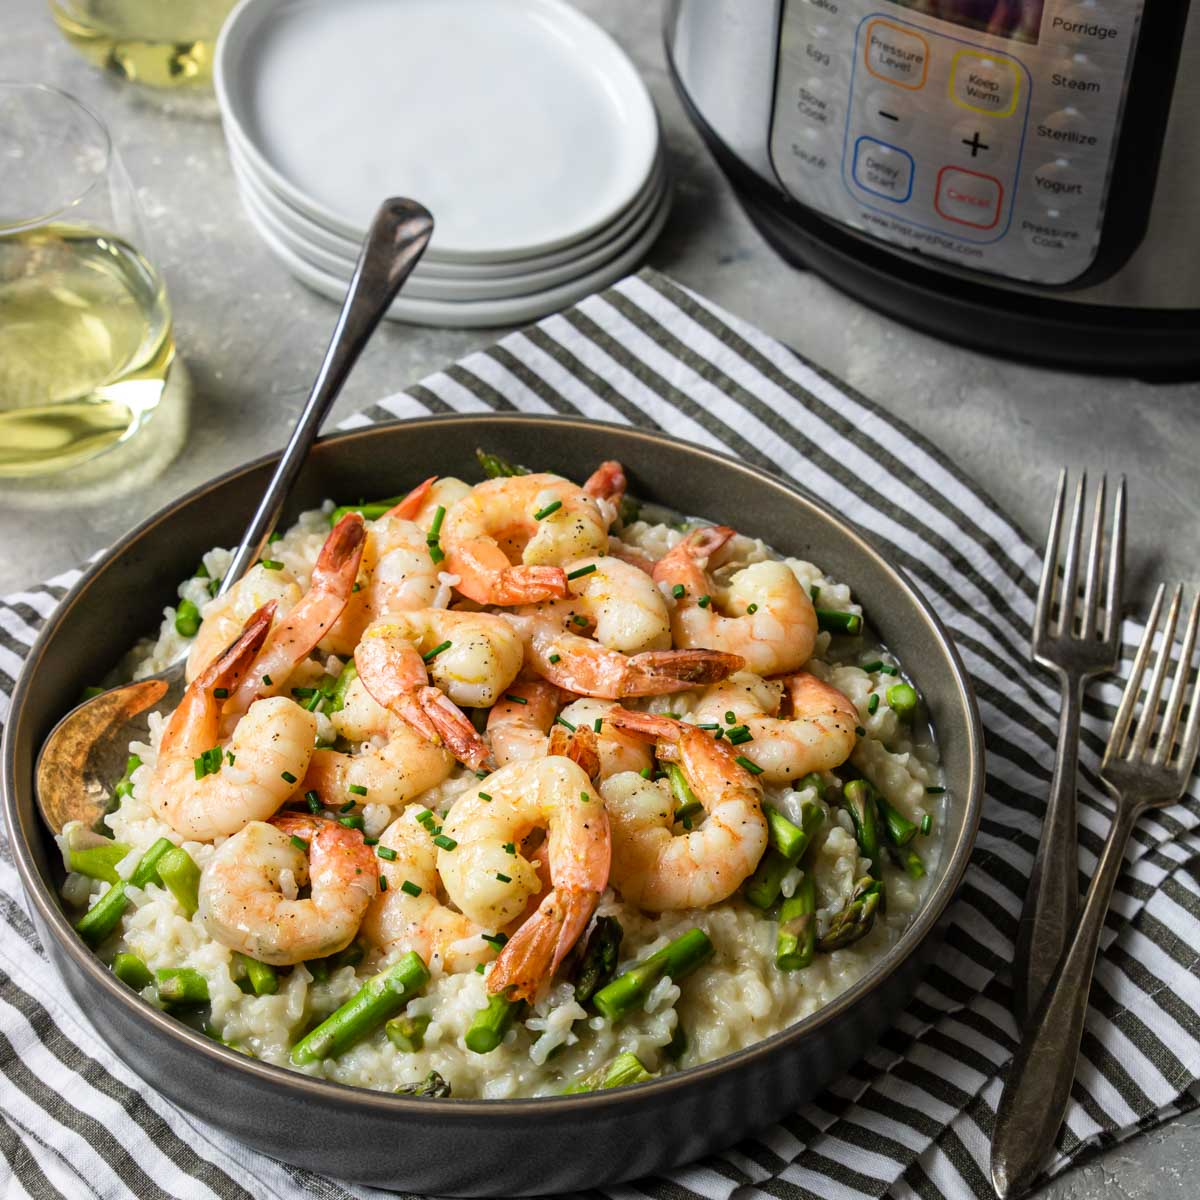 Instant Pot Shrimp Risotto in a bowl with an Instant Pot on the counter